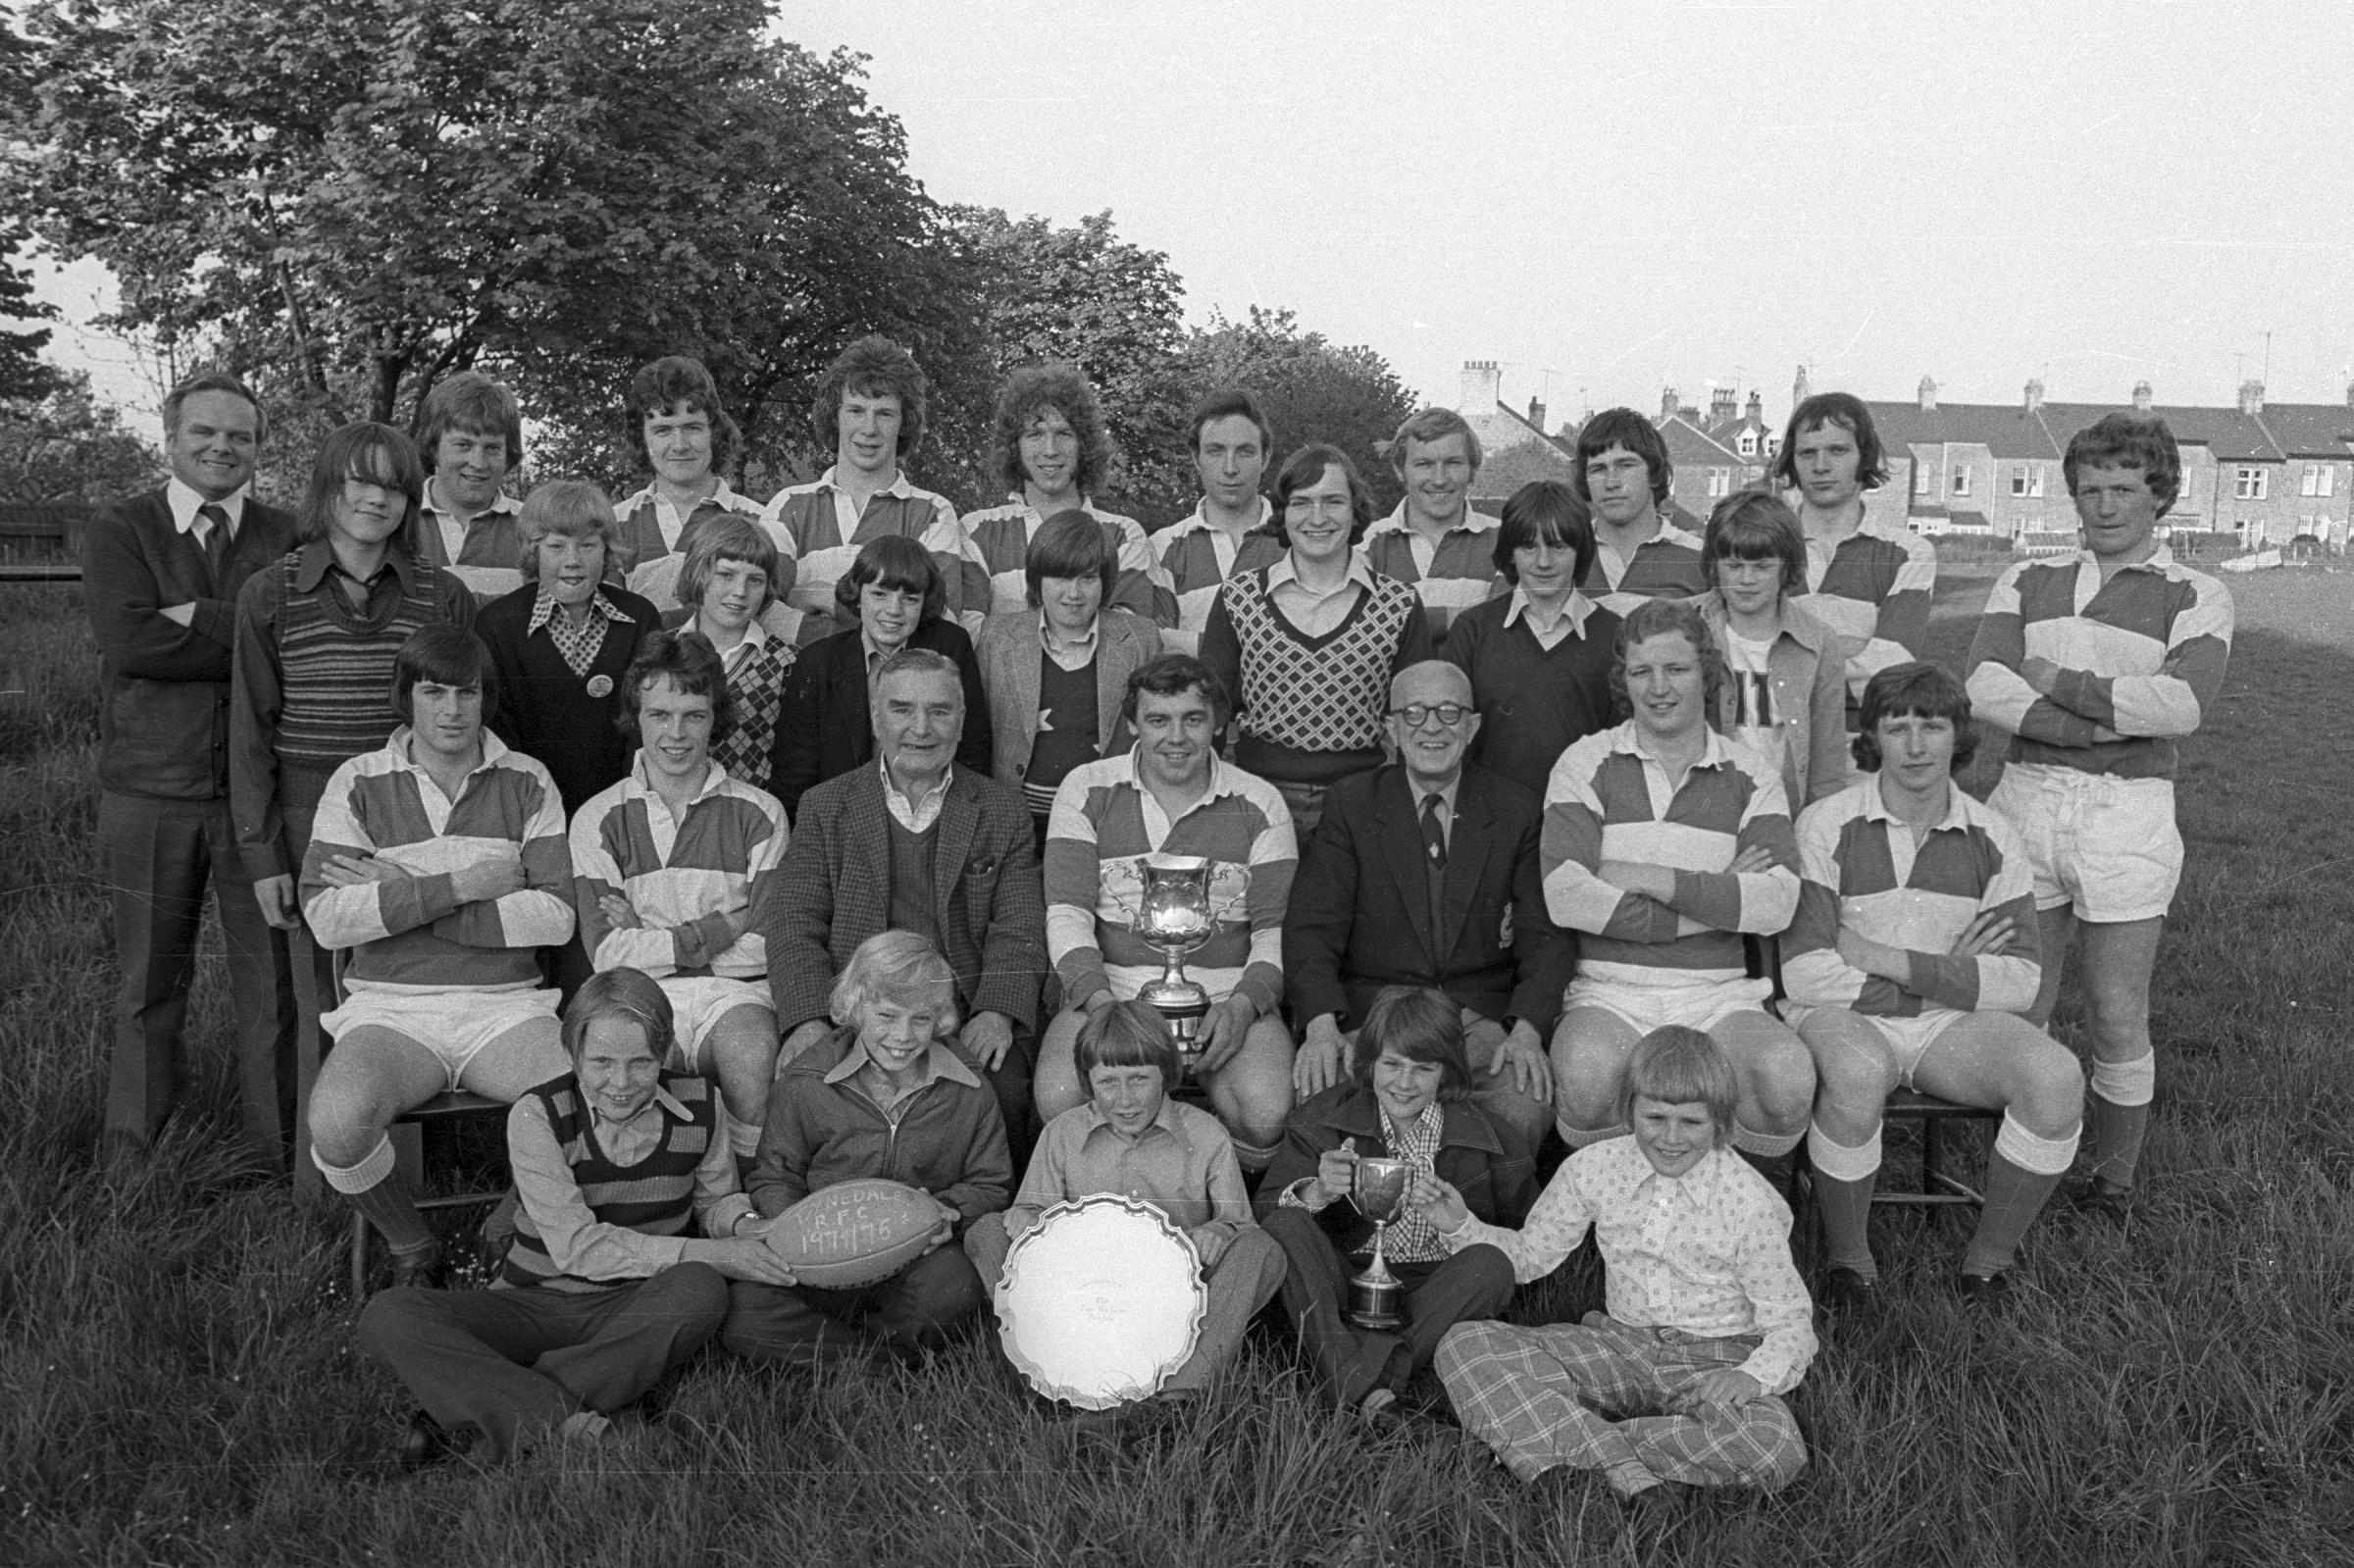 Tynedale Rugby Club celebrates its successes in the 1974-75 season at Dene Park, Hexham.